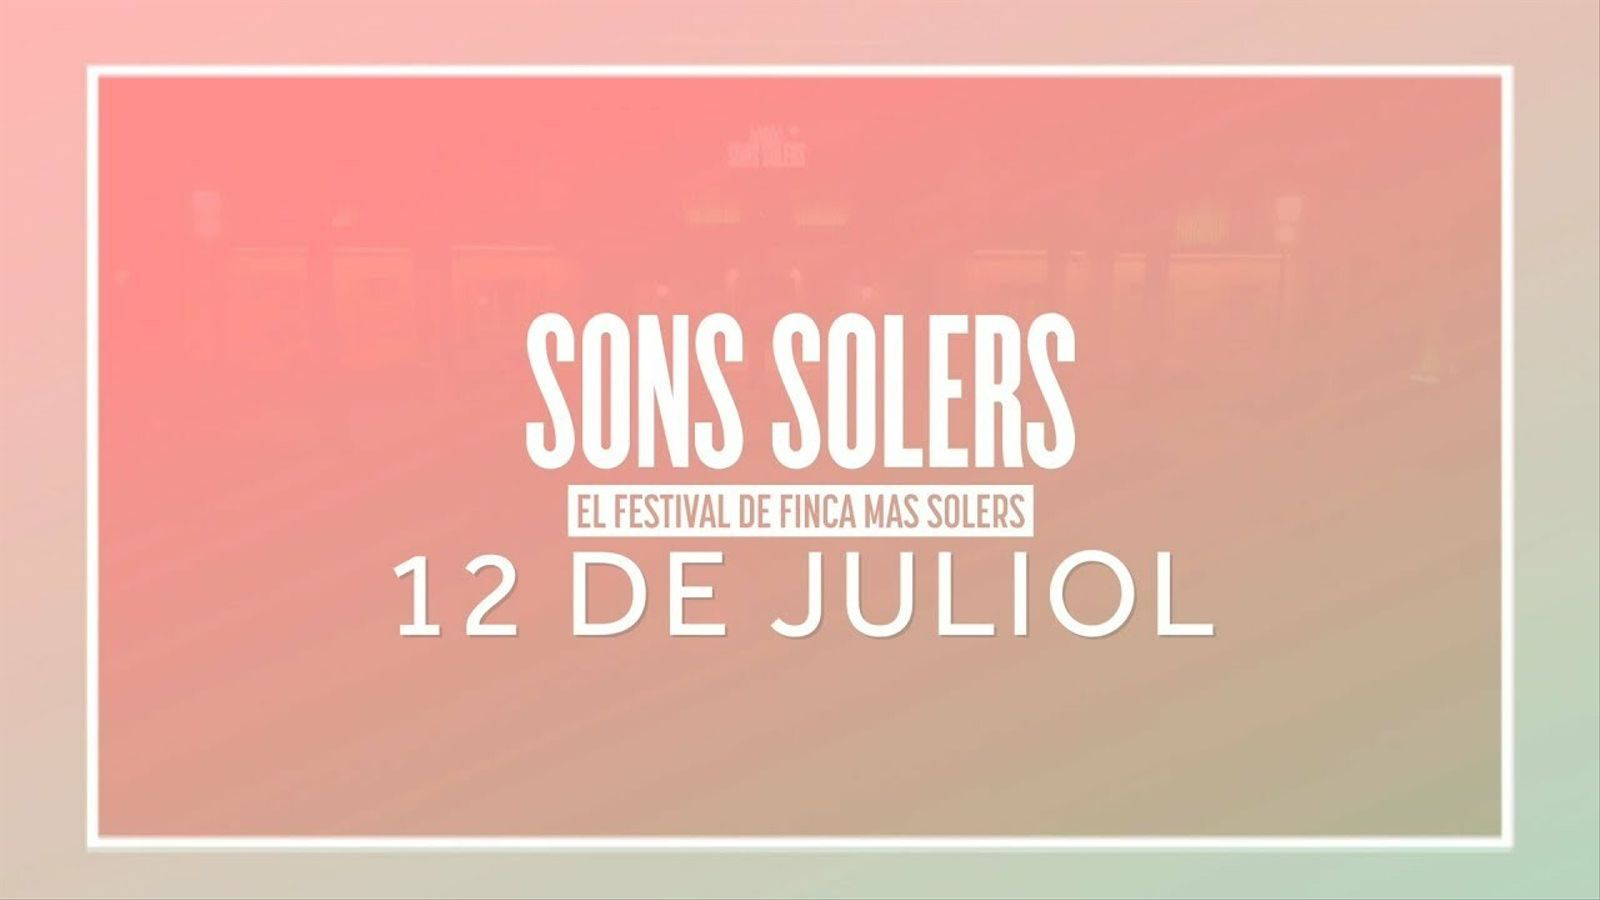 Sons Solers 2019